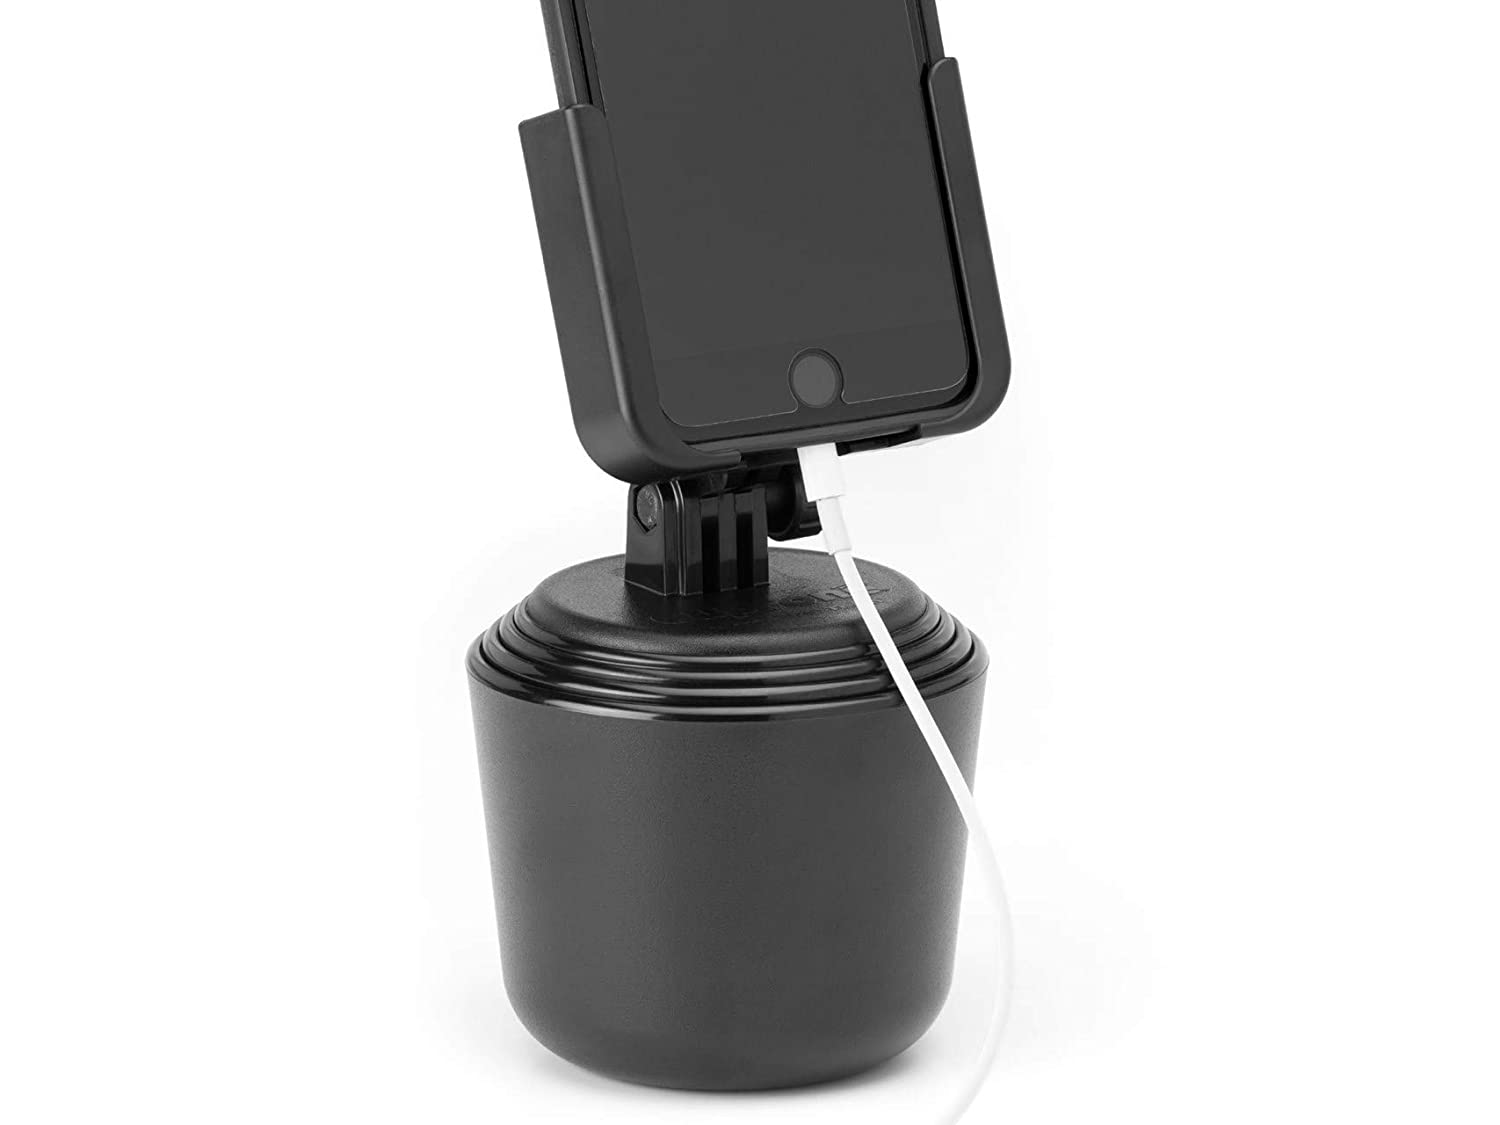 8ece77ddfc6d4 Amazon.com  WeatherTech CupFone -Universal Adjustable Portable Cup Holder  Car Mount for Cell Phones  Cell Phones   Accessories